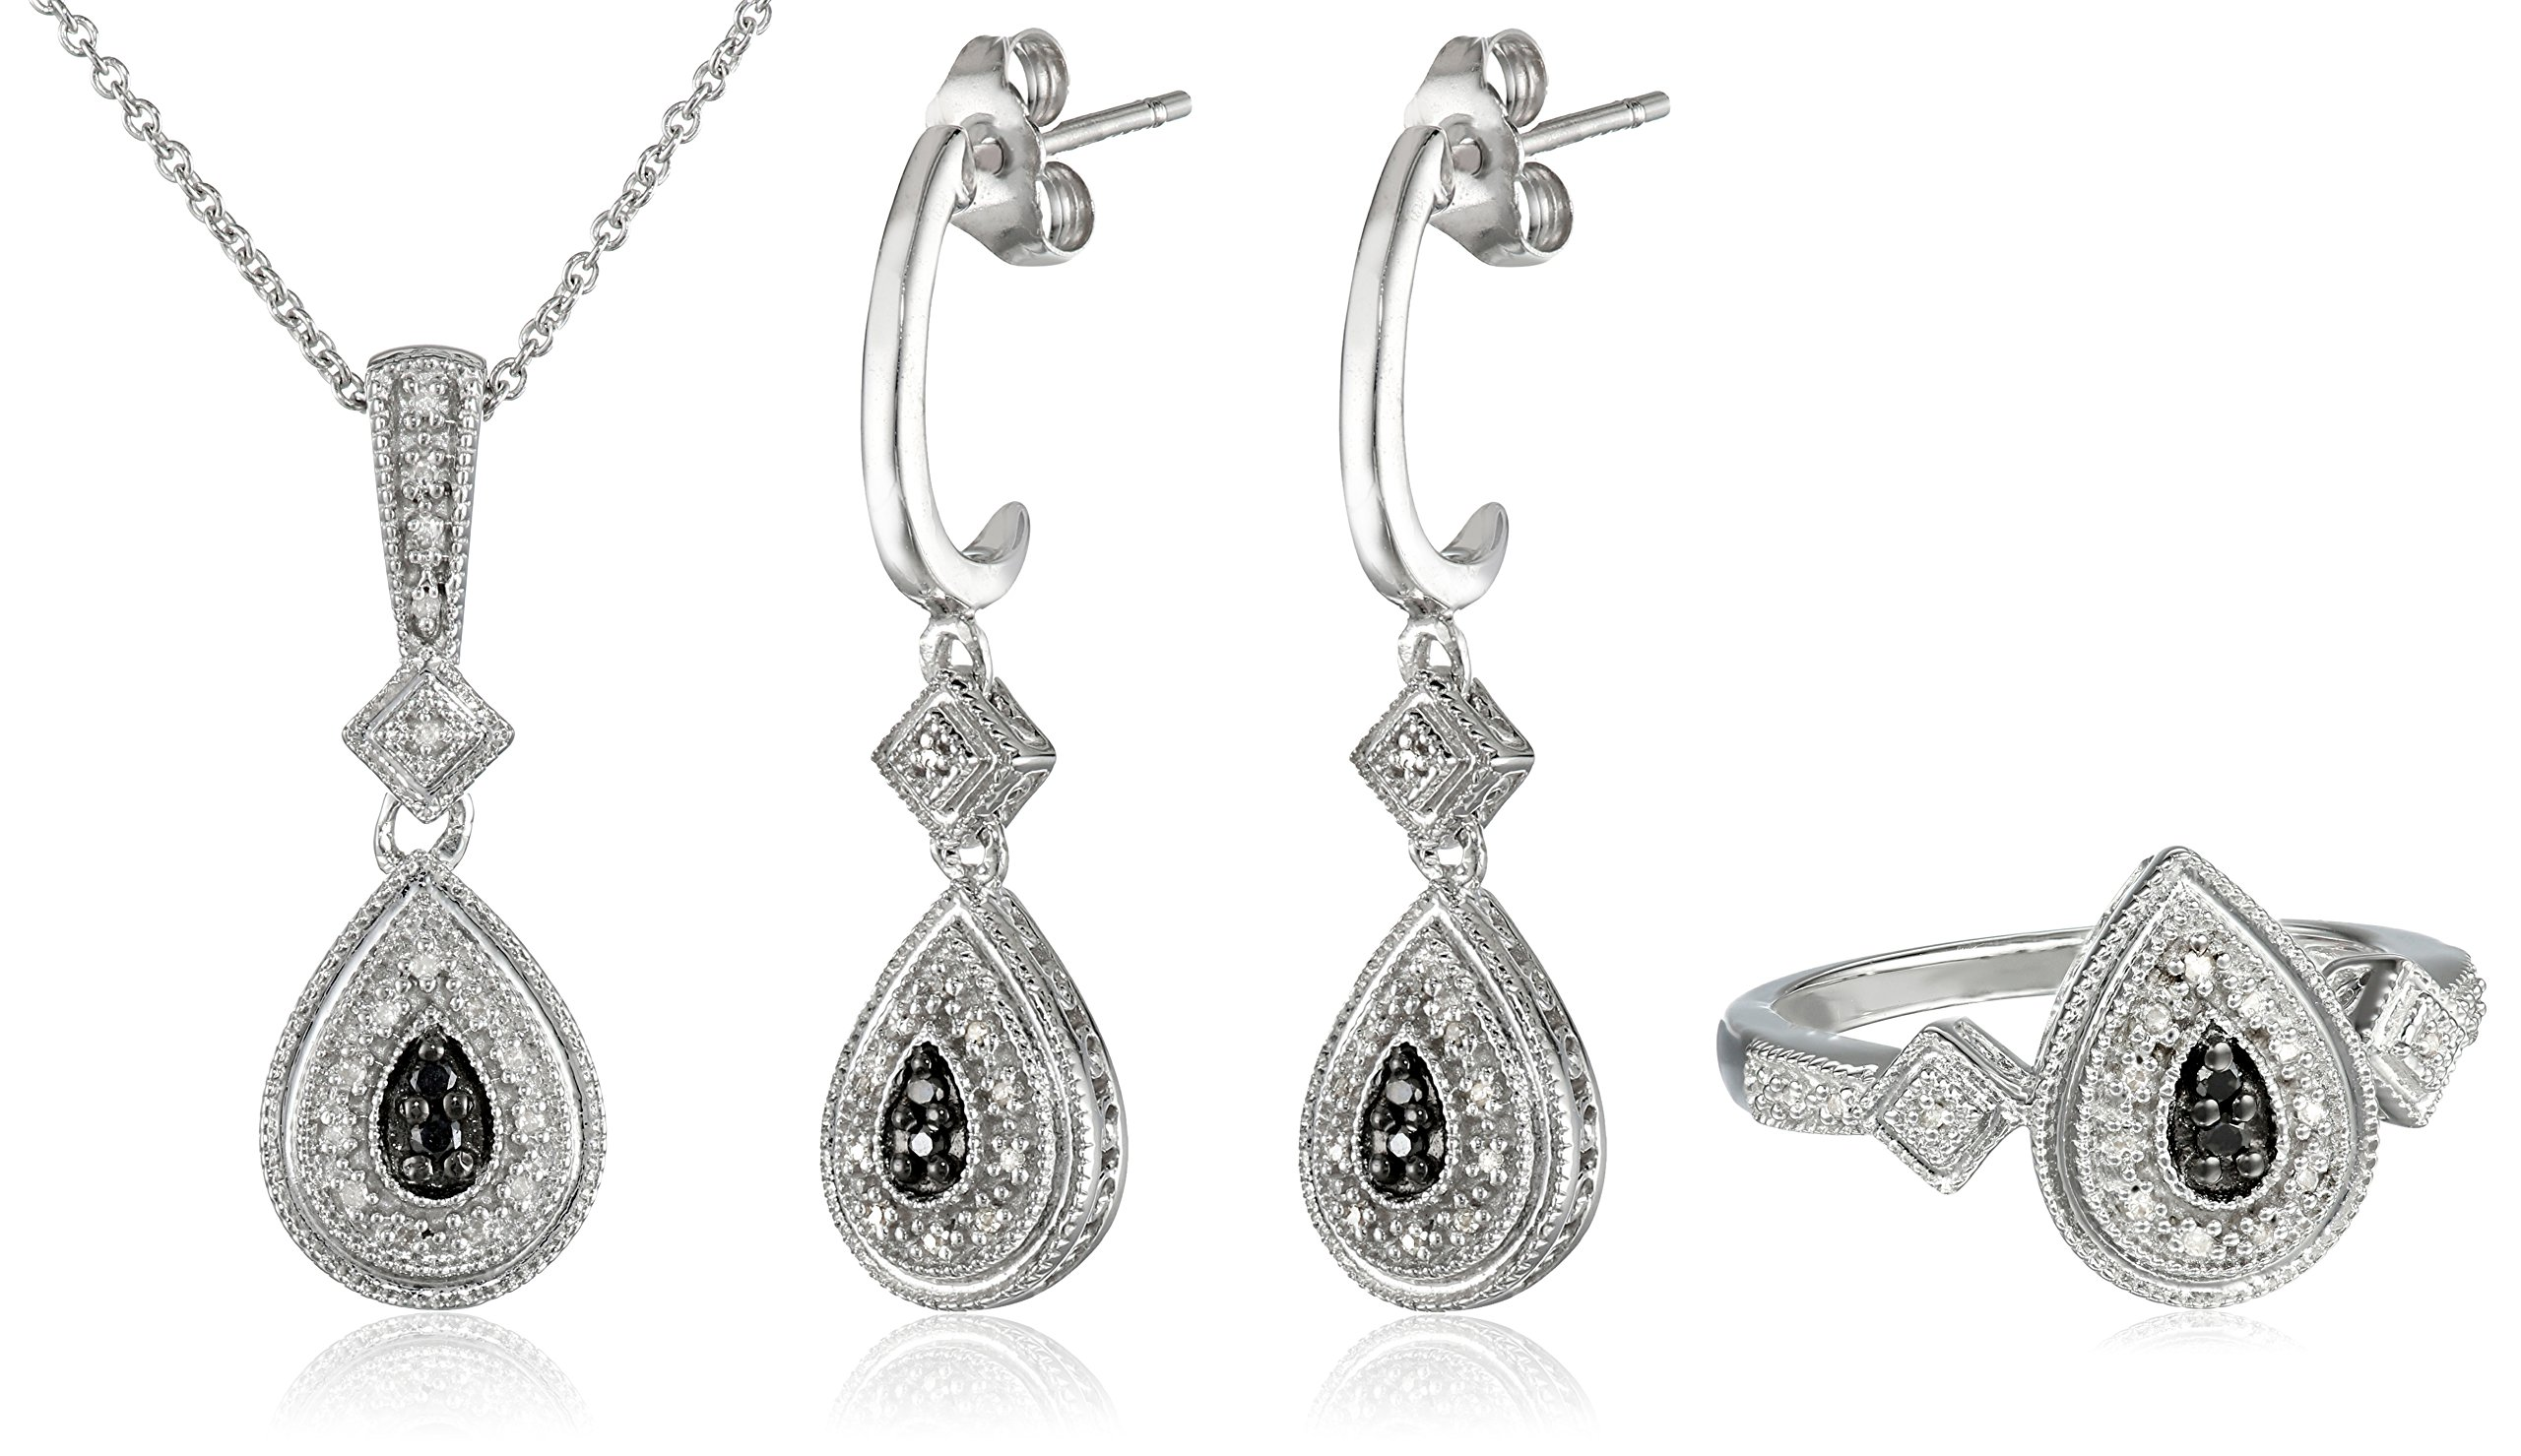 Sterling Silver Black and White Diamond Earrings, Pendant Necklace and Ring Box Set (1/4 cttw)